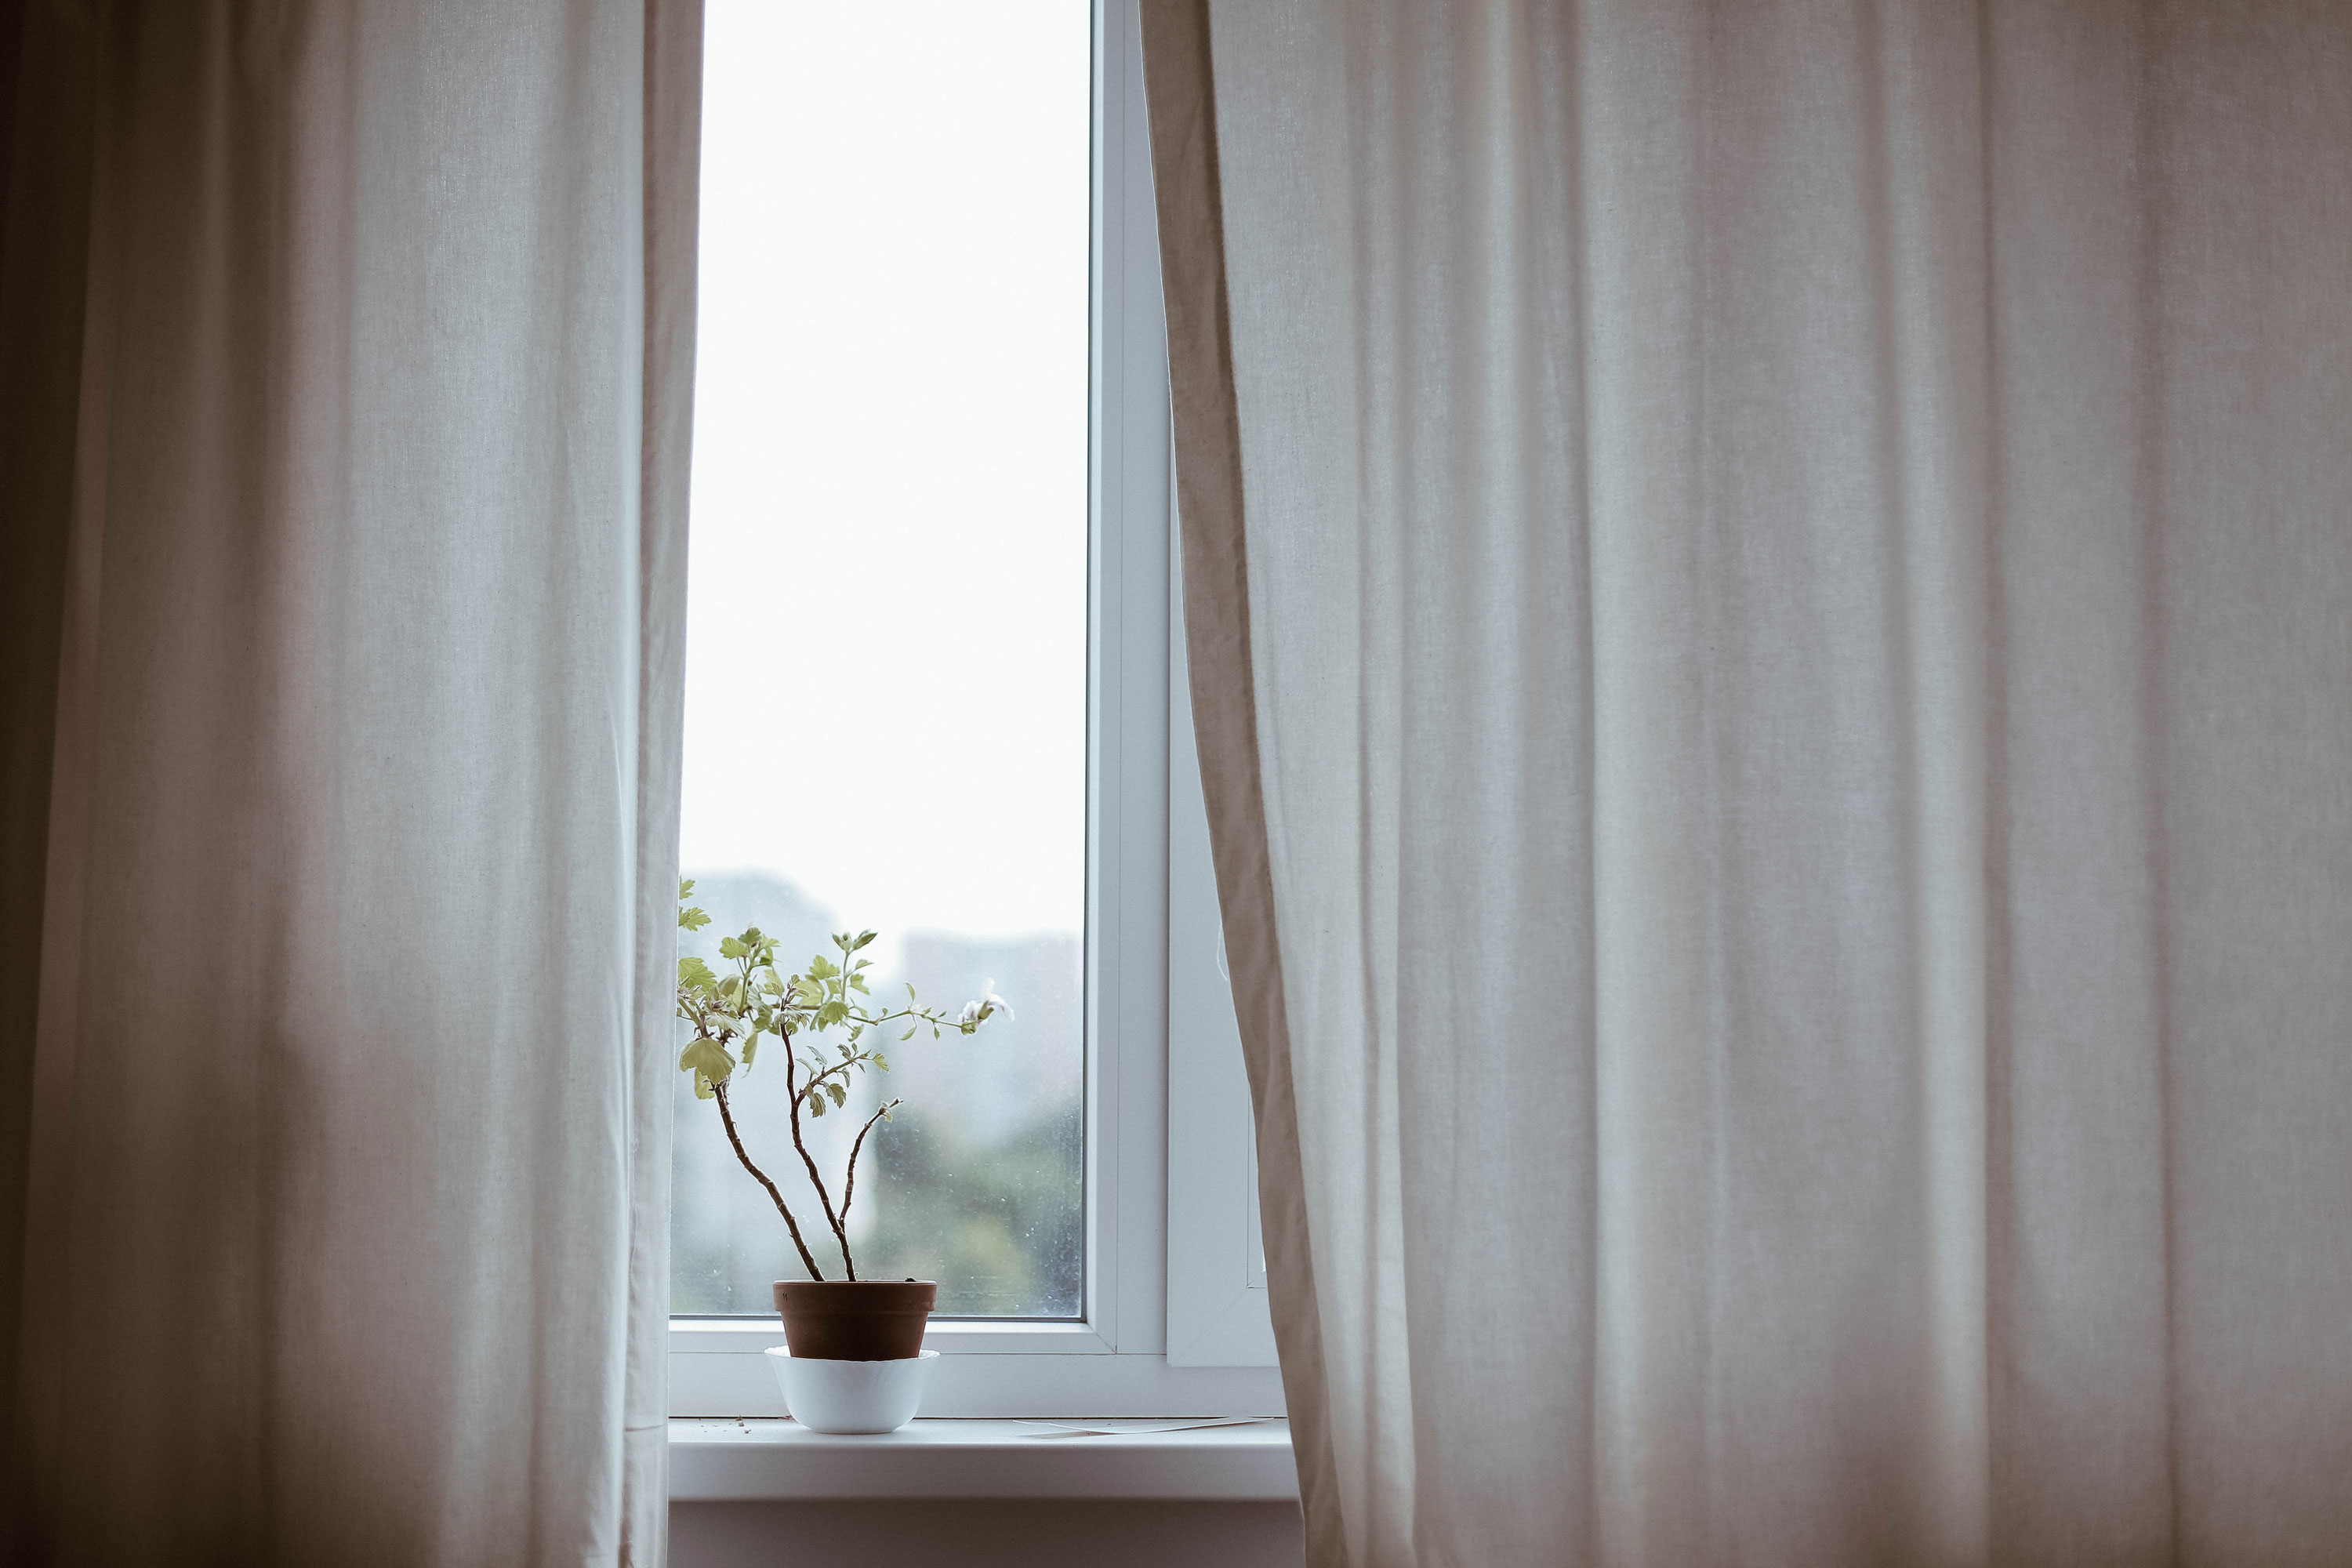 Window with Plant